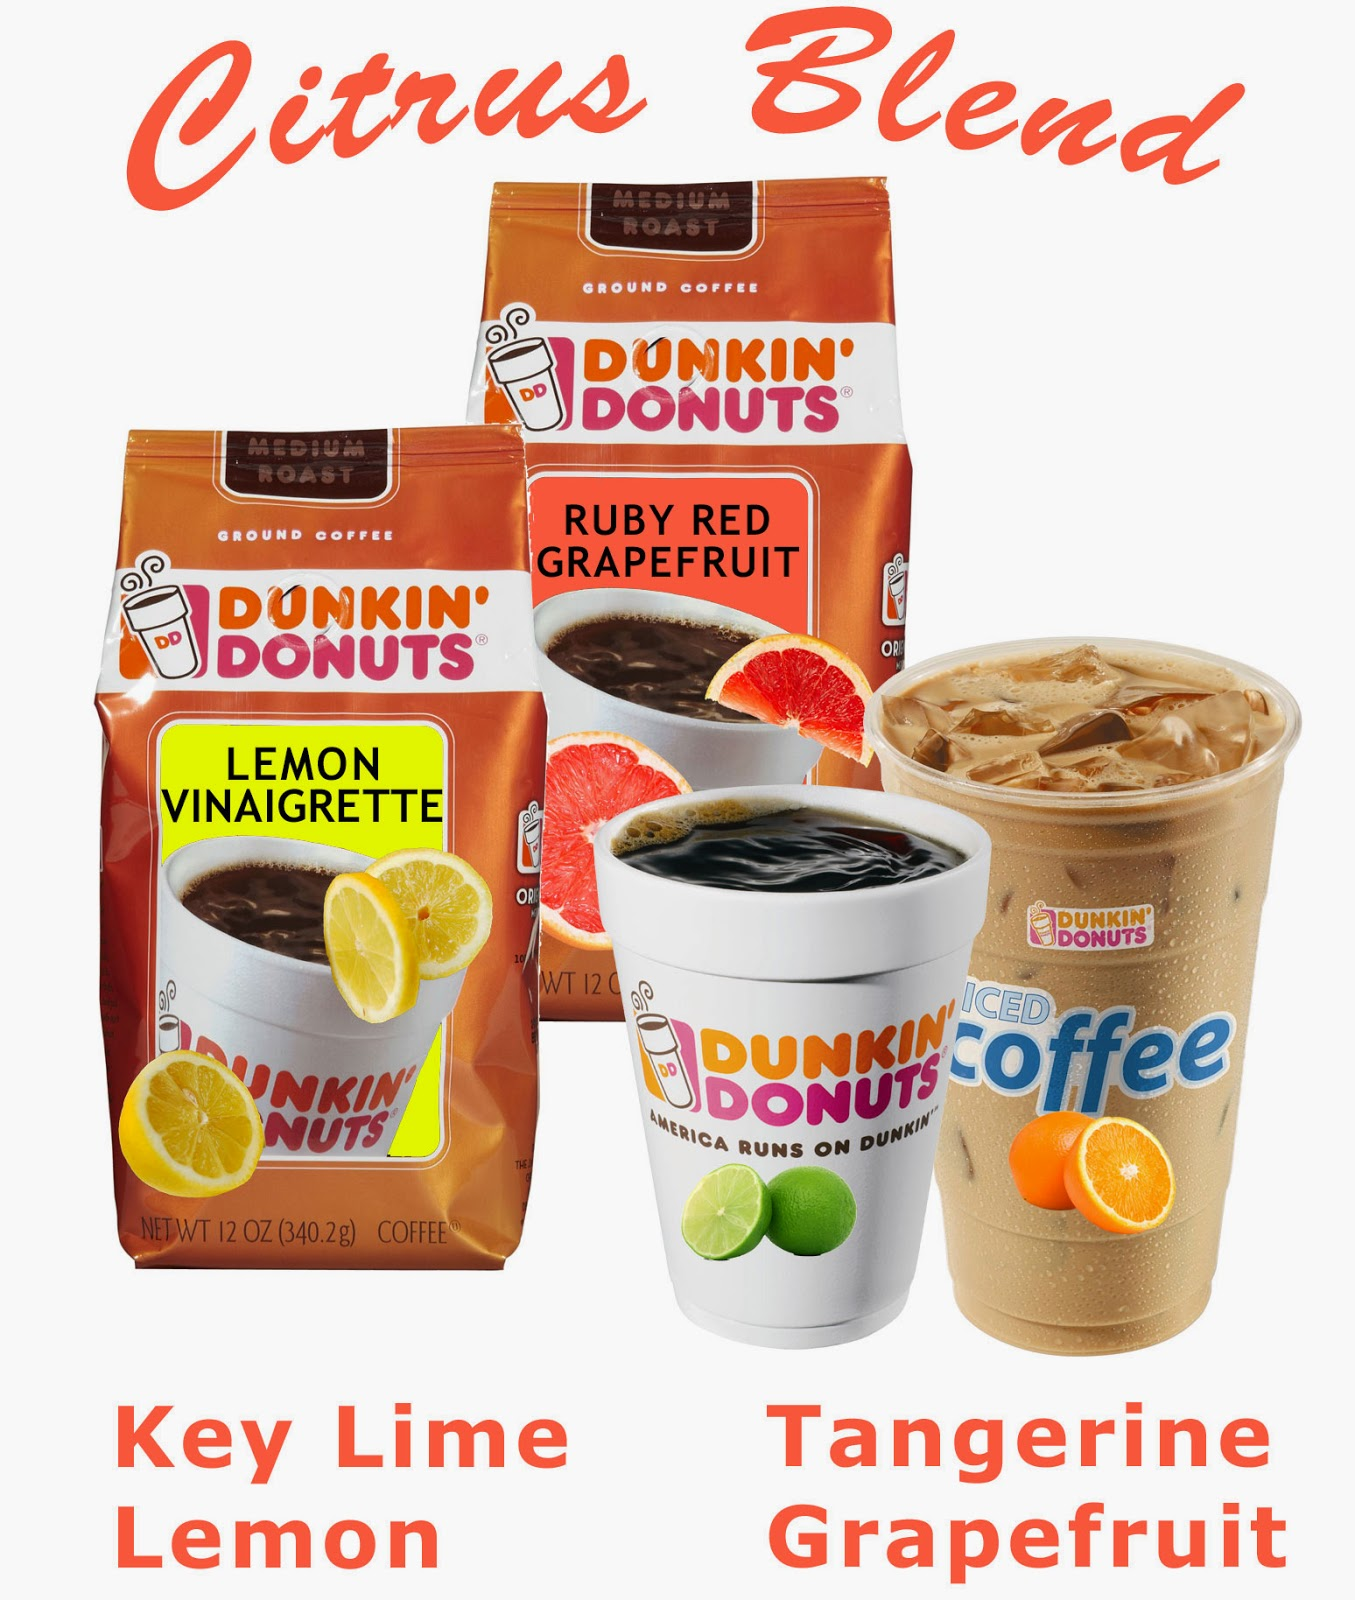 Dunkin Donuts new coffee flavors for Summer